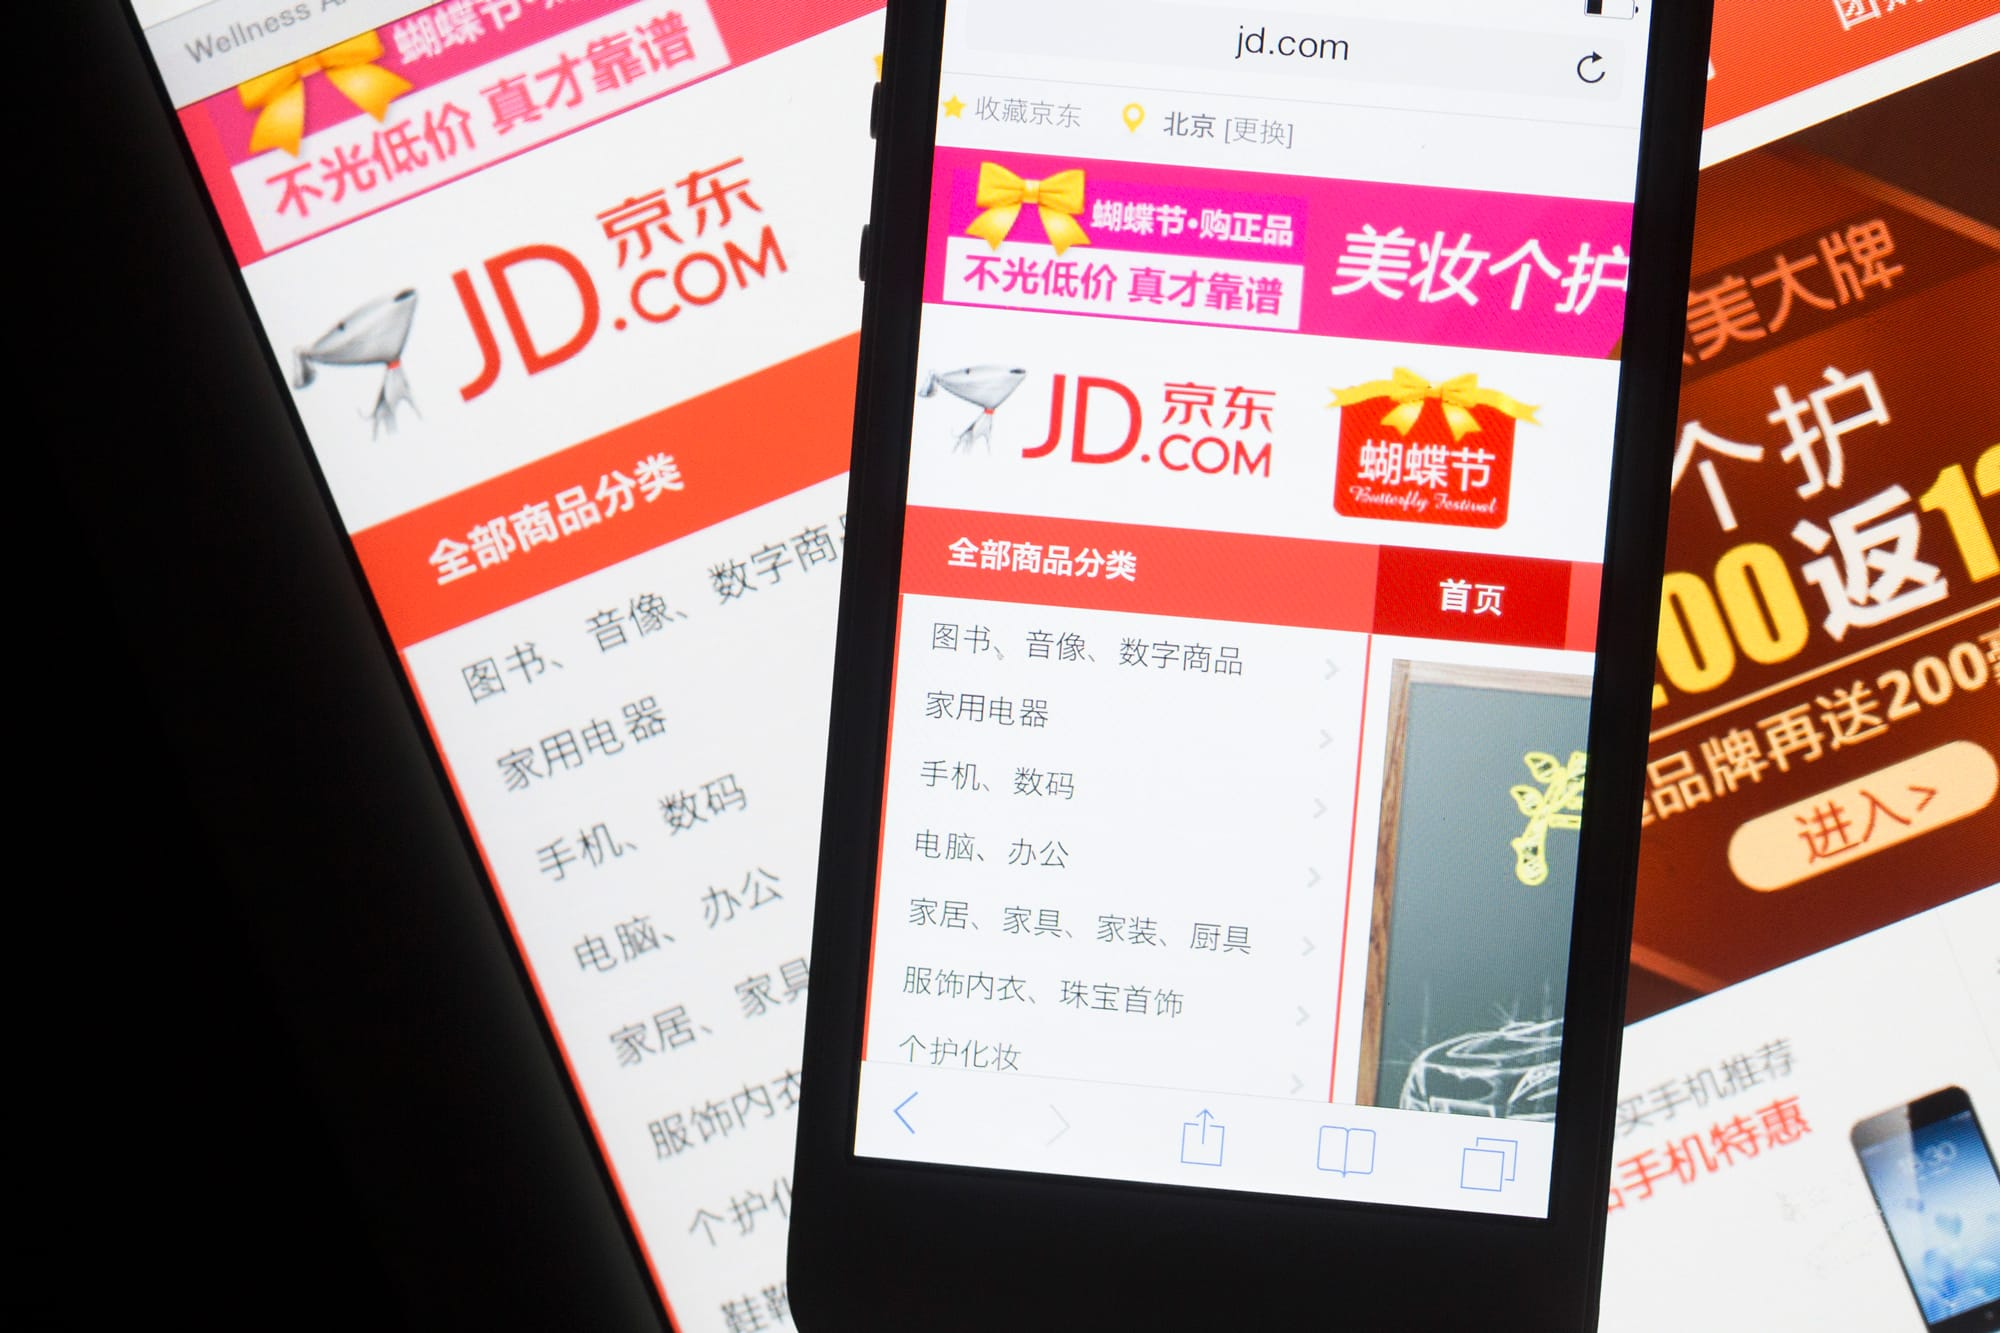 JD.com IPO is 15 times oversubscribed - sources